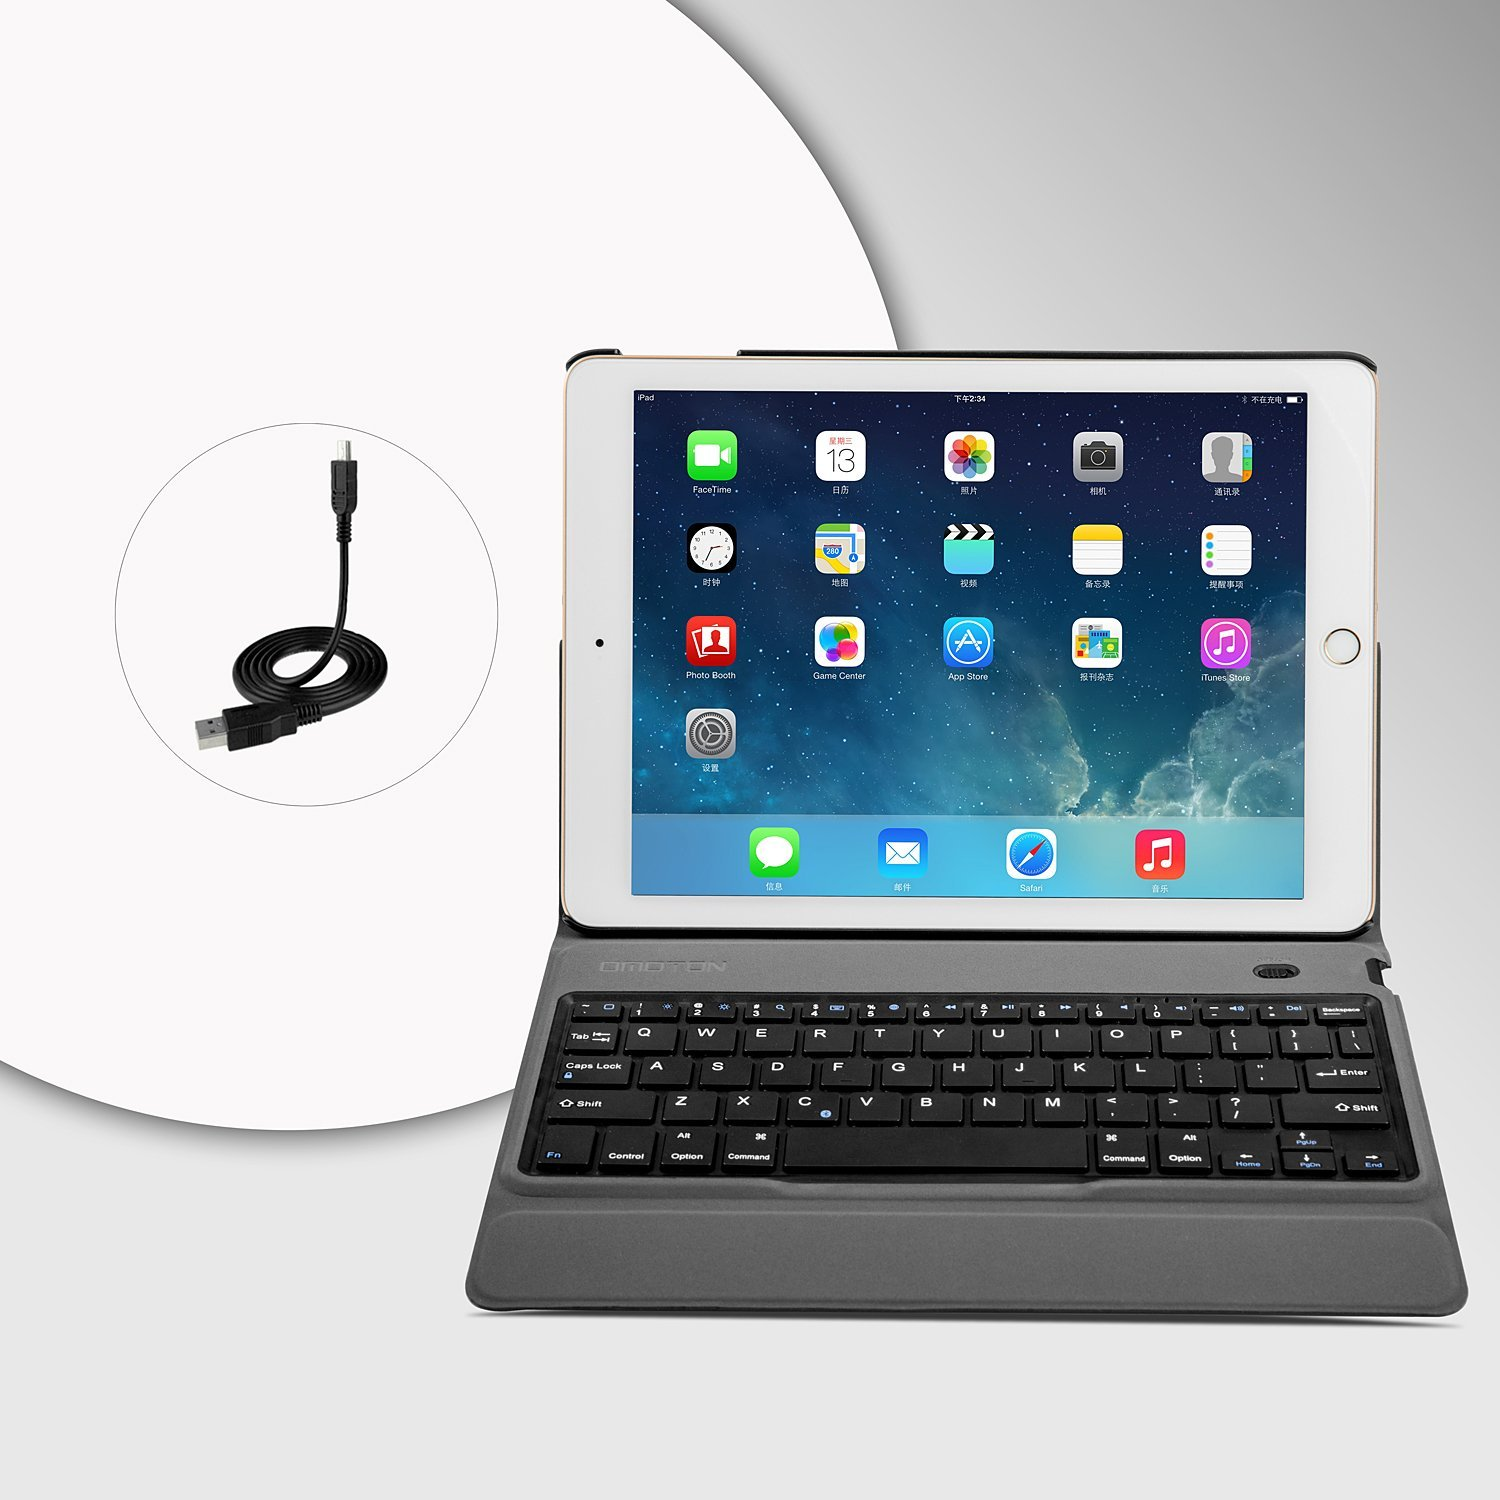 OMOTON New iPad 9.7 2018 & iPad 9.7 2017 Keyboard Case, [Upgraded Version] Ultra-Thin Bluetooth Keyboard Portfolio Case with Stand, PU Leather, and Auto Sleep/Wake for Apple iPad 9.7 2017 2018 Tablet by OMOTON (Image #9)